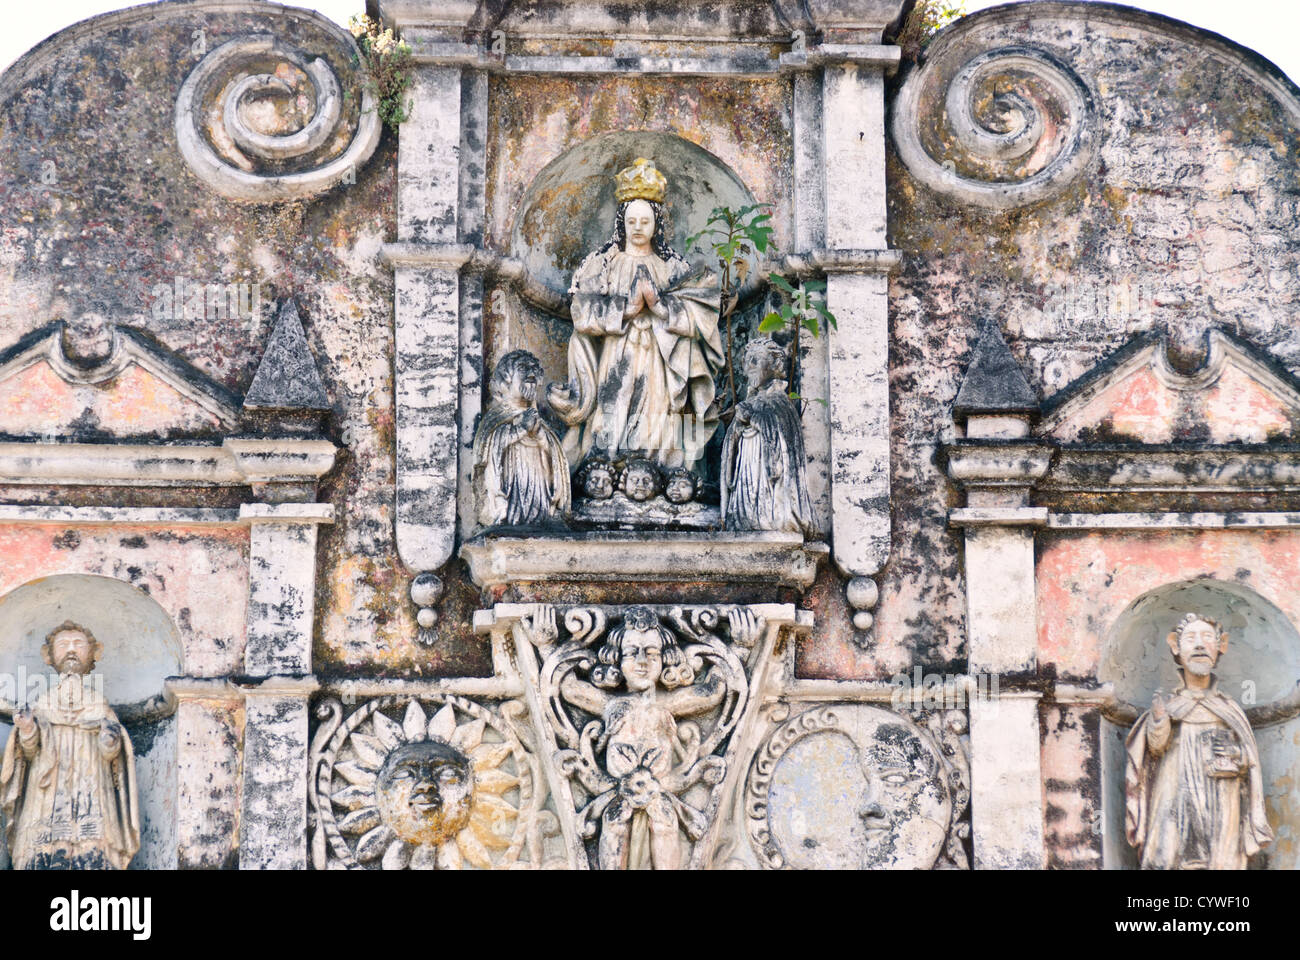 Intricate carvings on the exterior of a partially ruined church in Antigua, Guatemala. - Stock Image